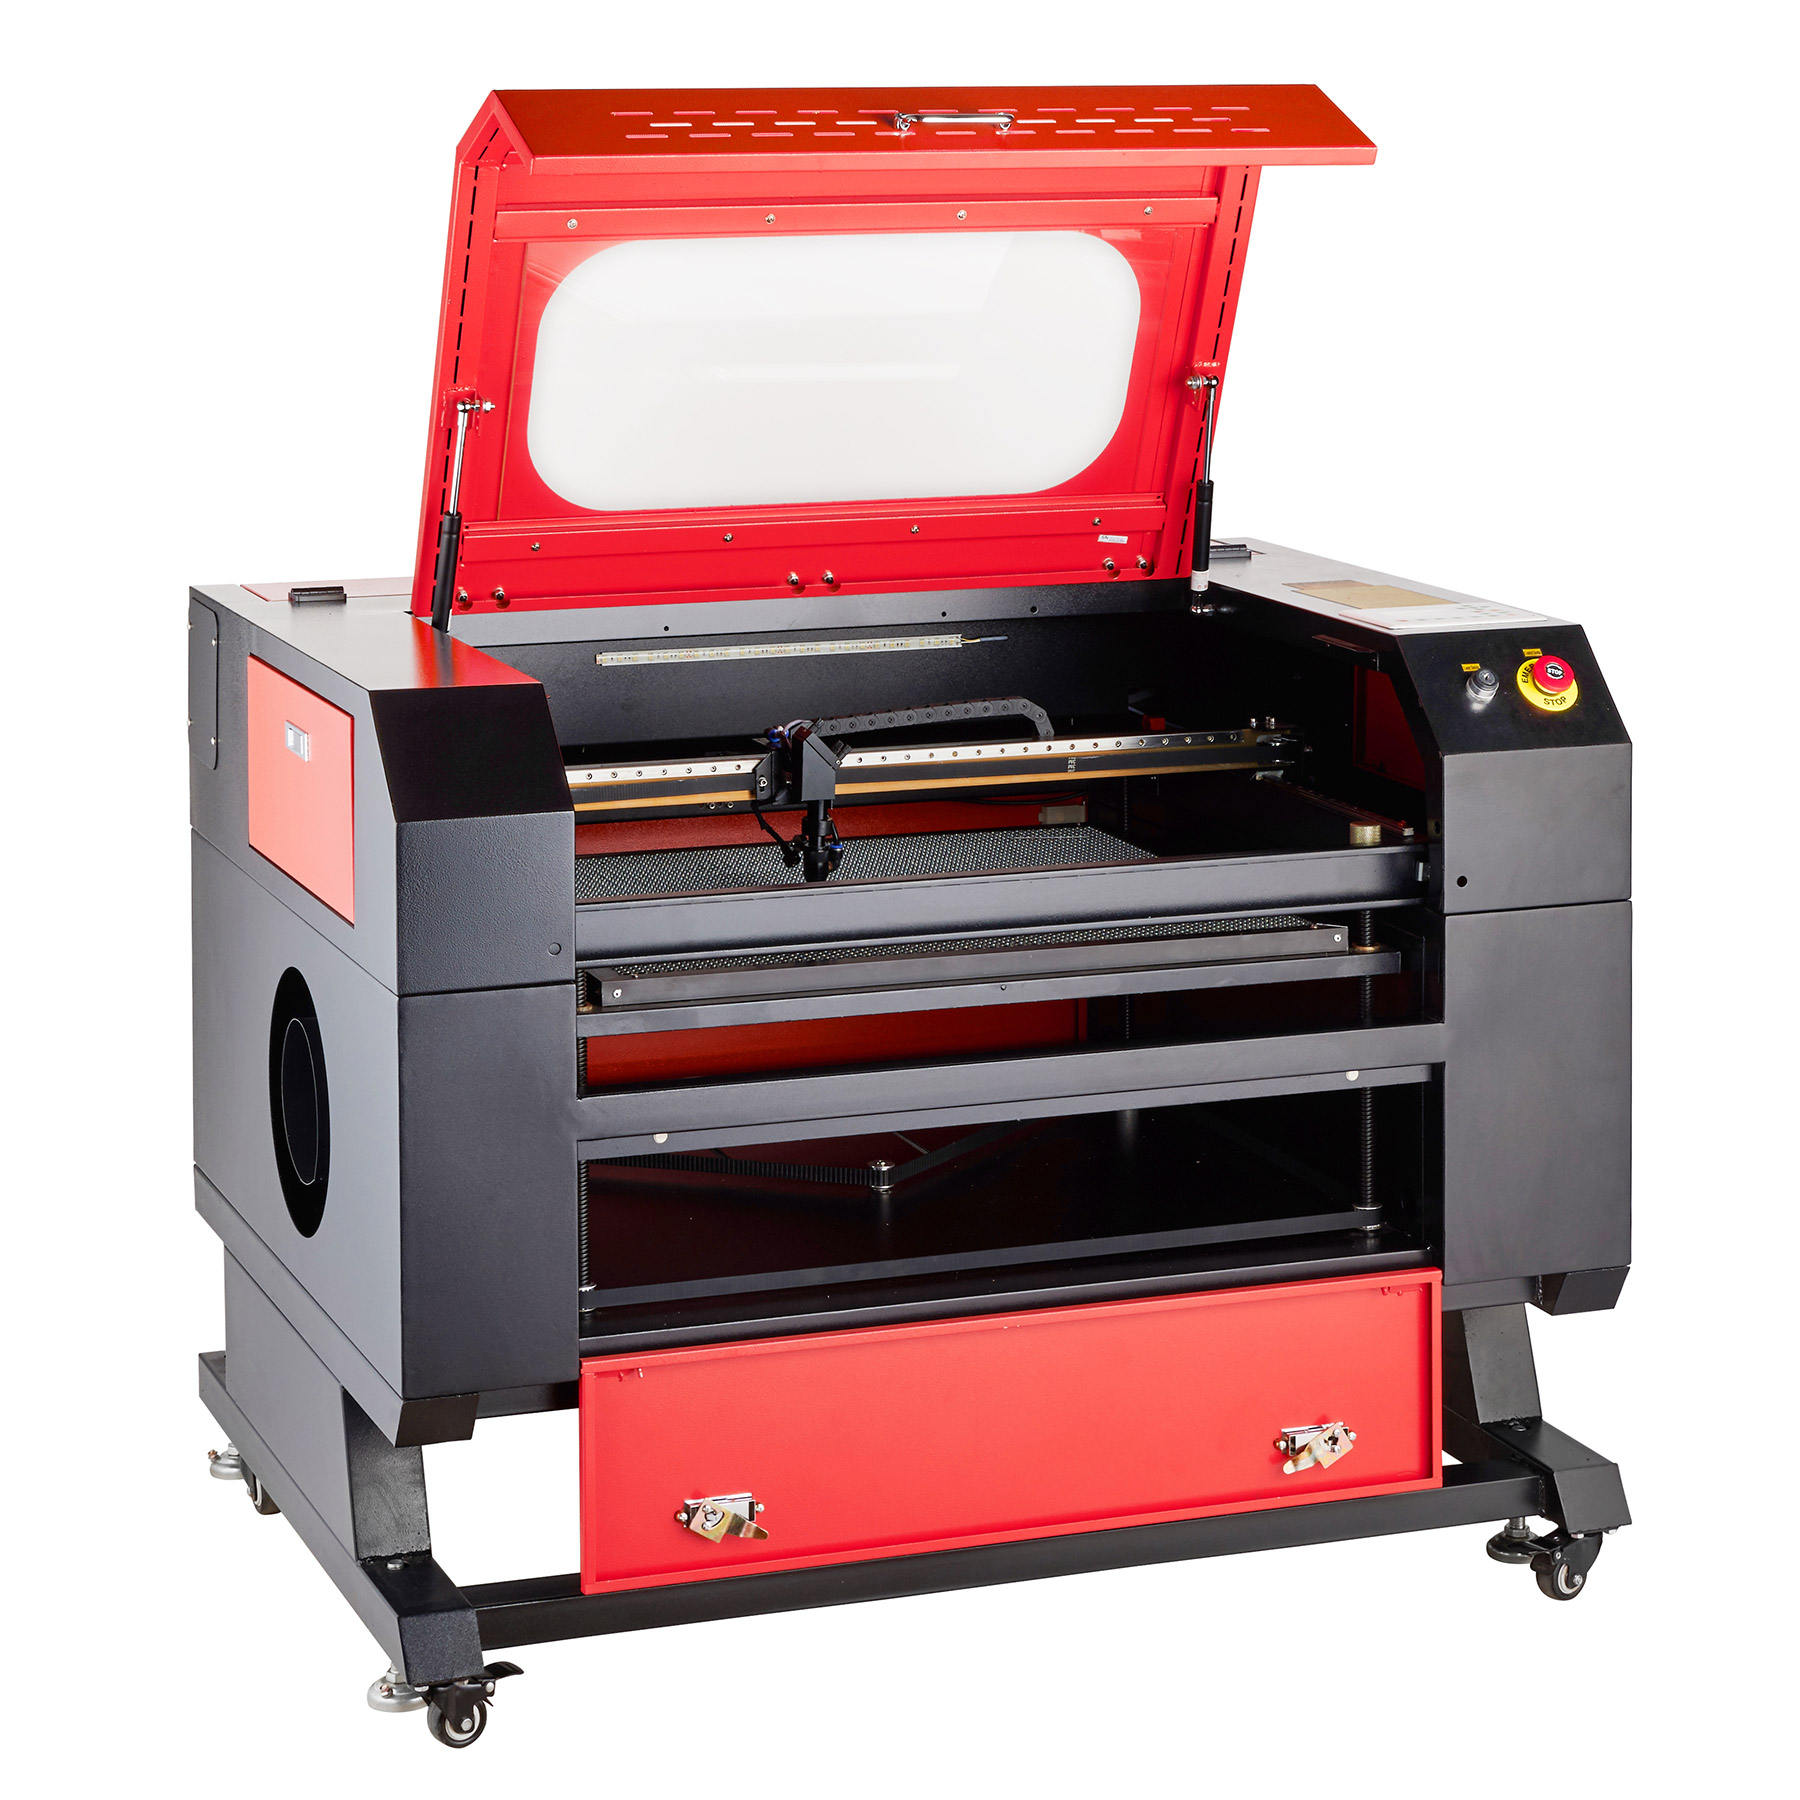 60w CO2 Laser Engraving & Cutting Professional Engraver Machine w/ Liftgate Service